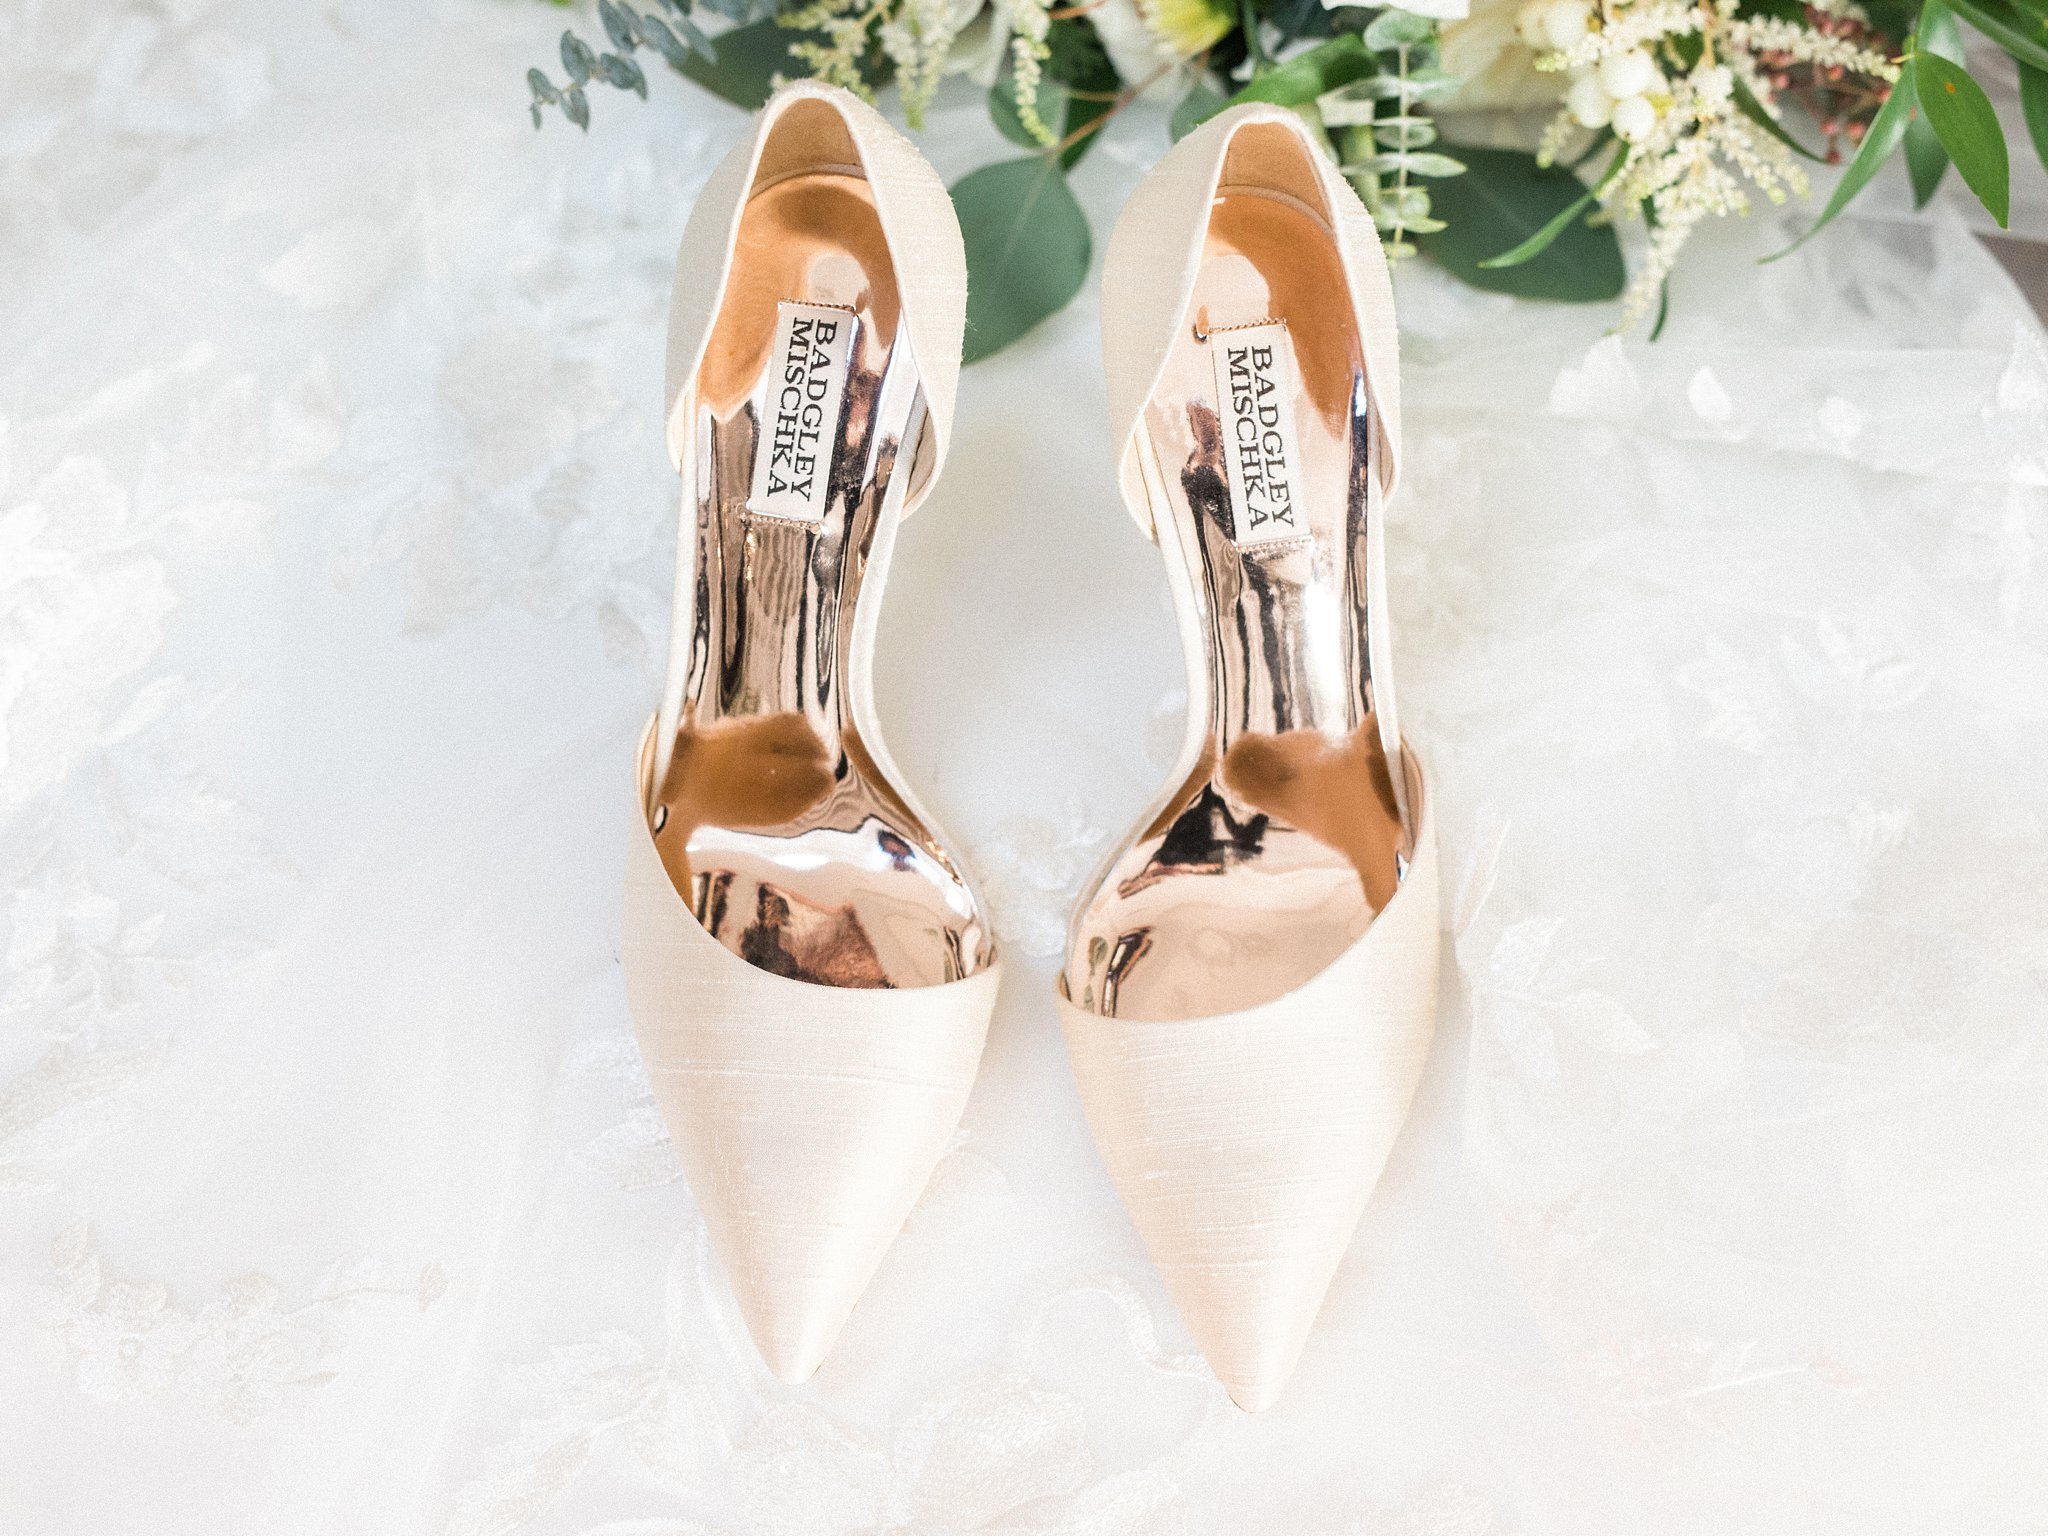 Badgley Mischa bridal heels, Opinicon Wedding Photos by Amy Pinder Photography